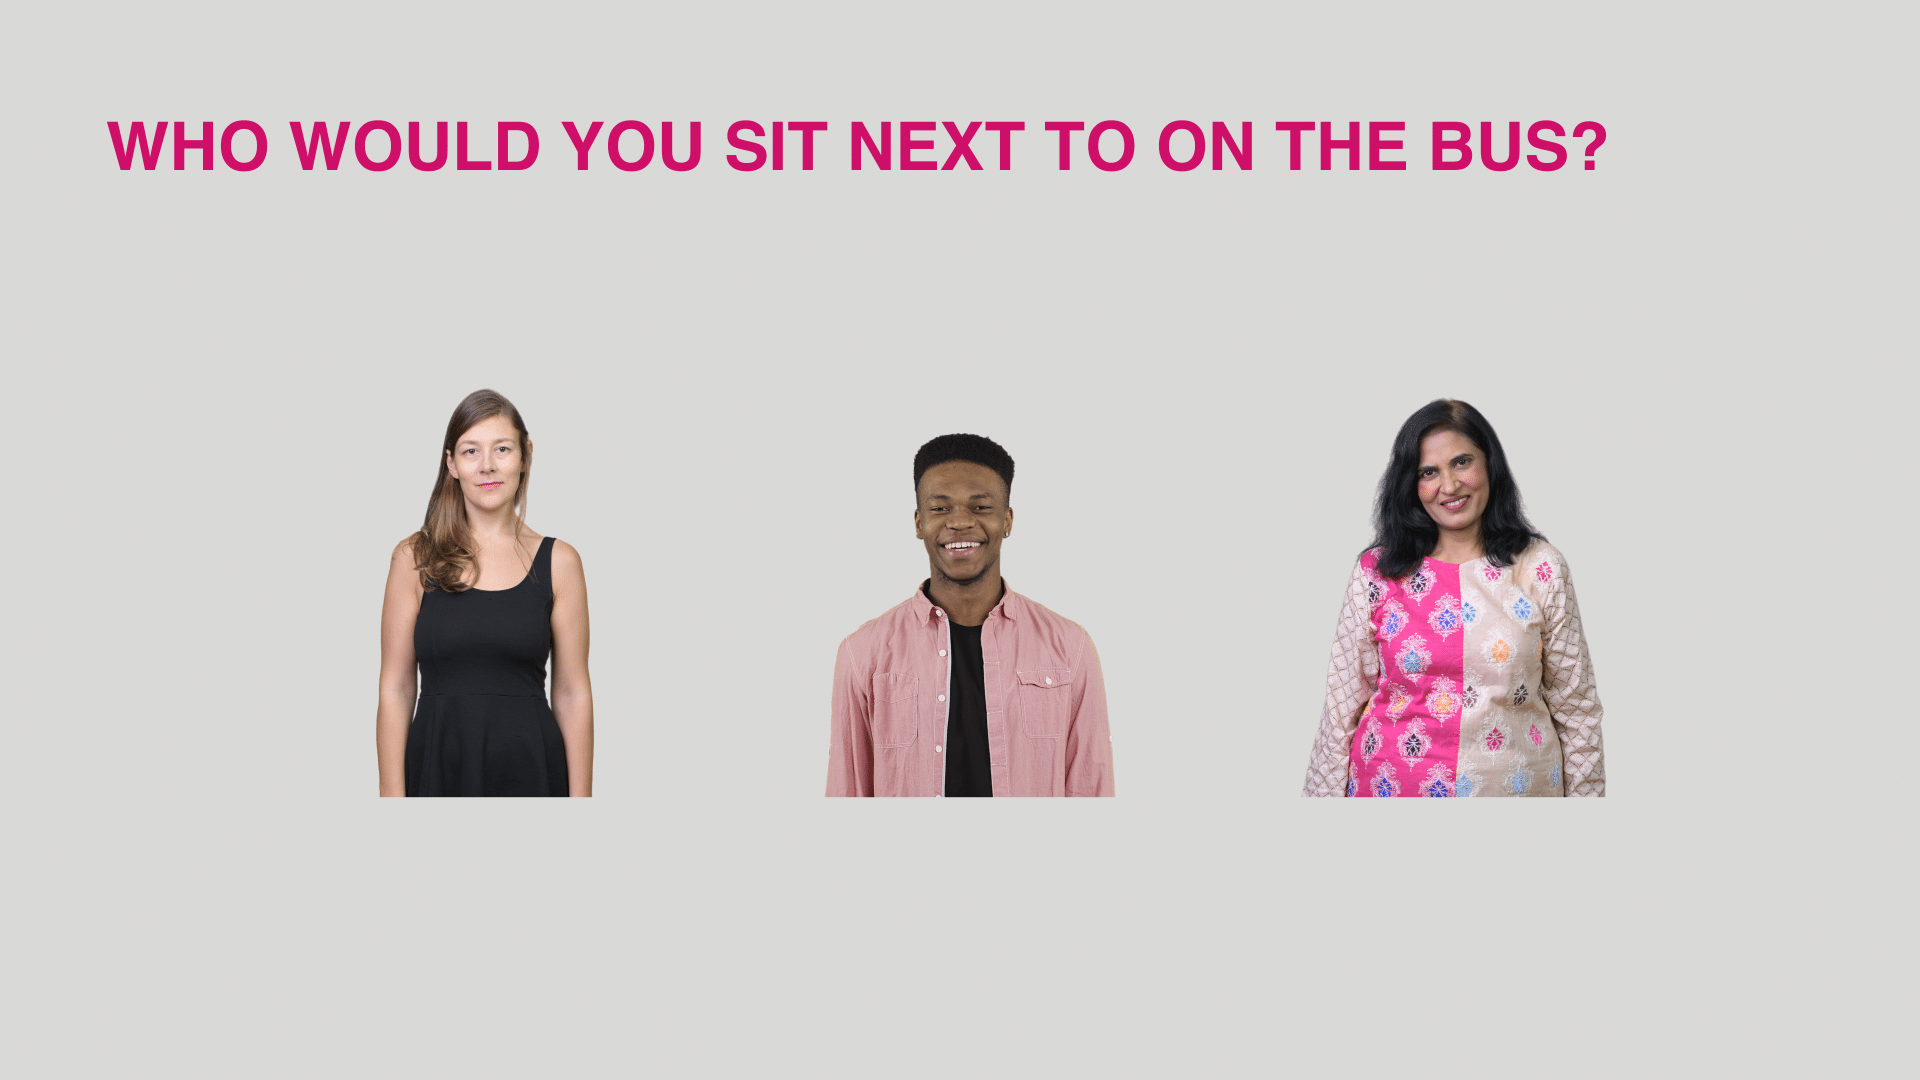 Unconscious bias training exercise - Who would you sit next to on the bus